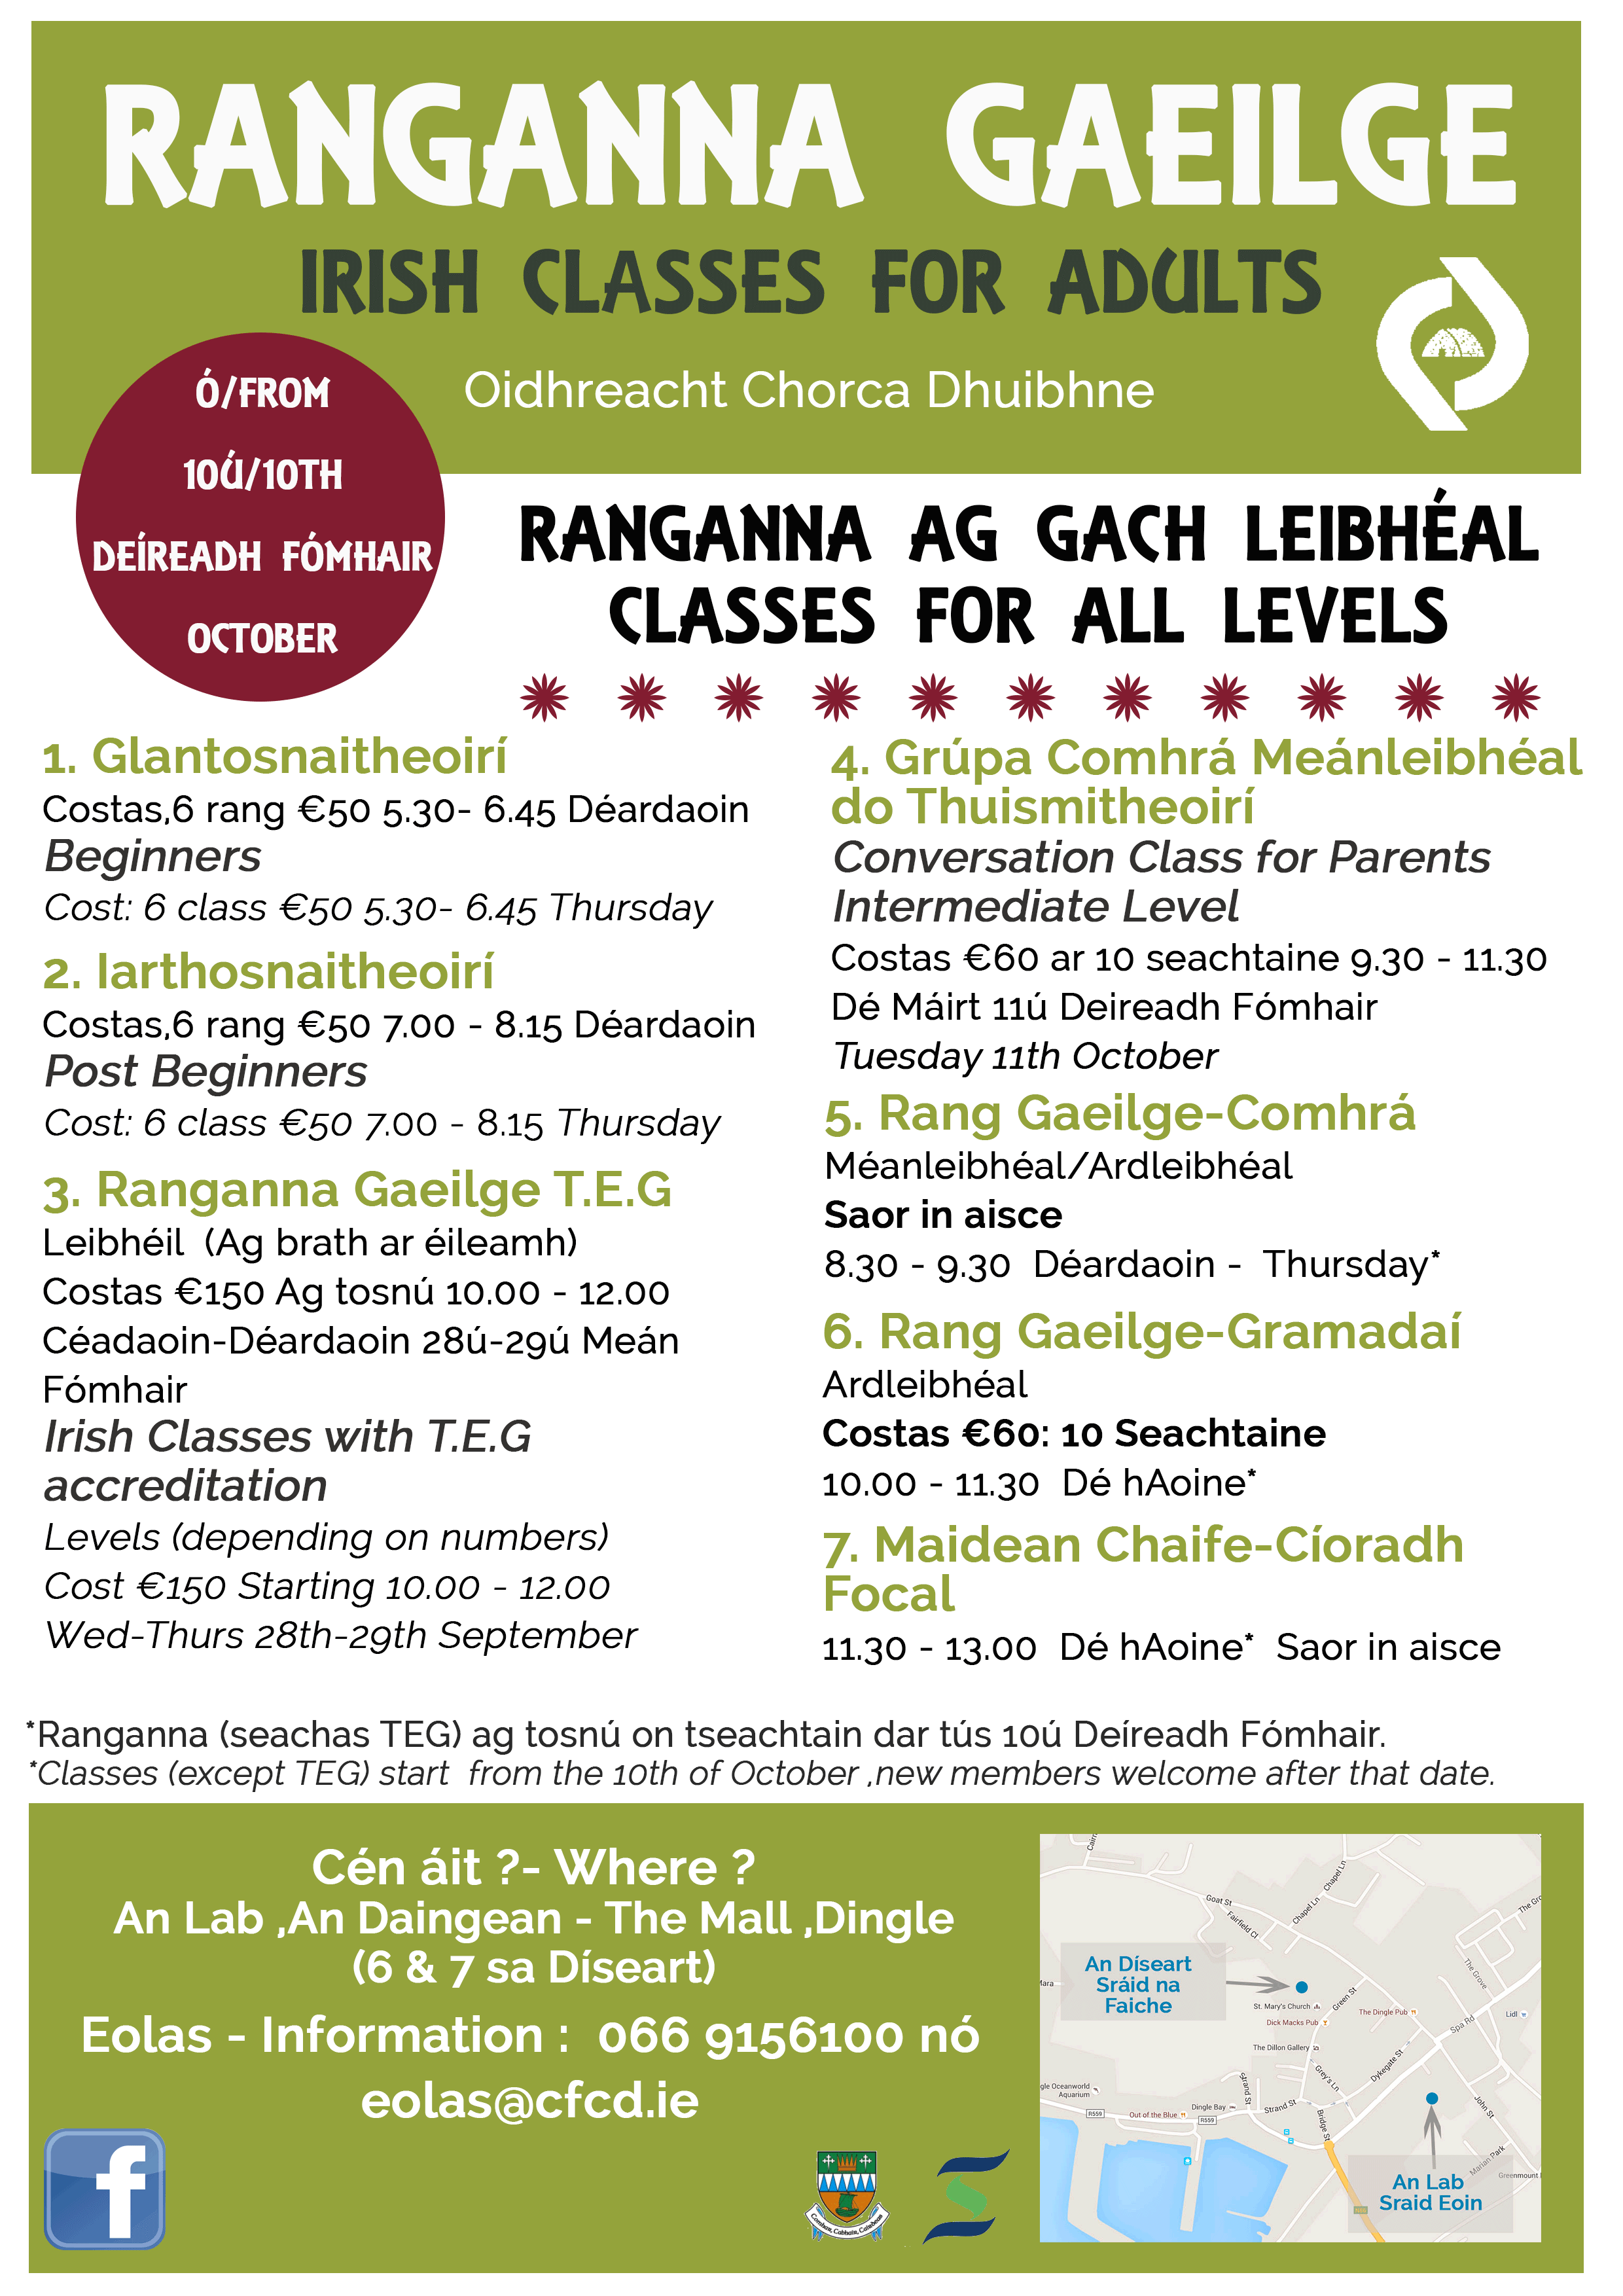 Irish Classes for Adults in Dingle